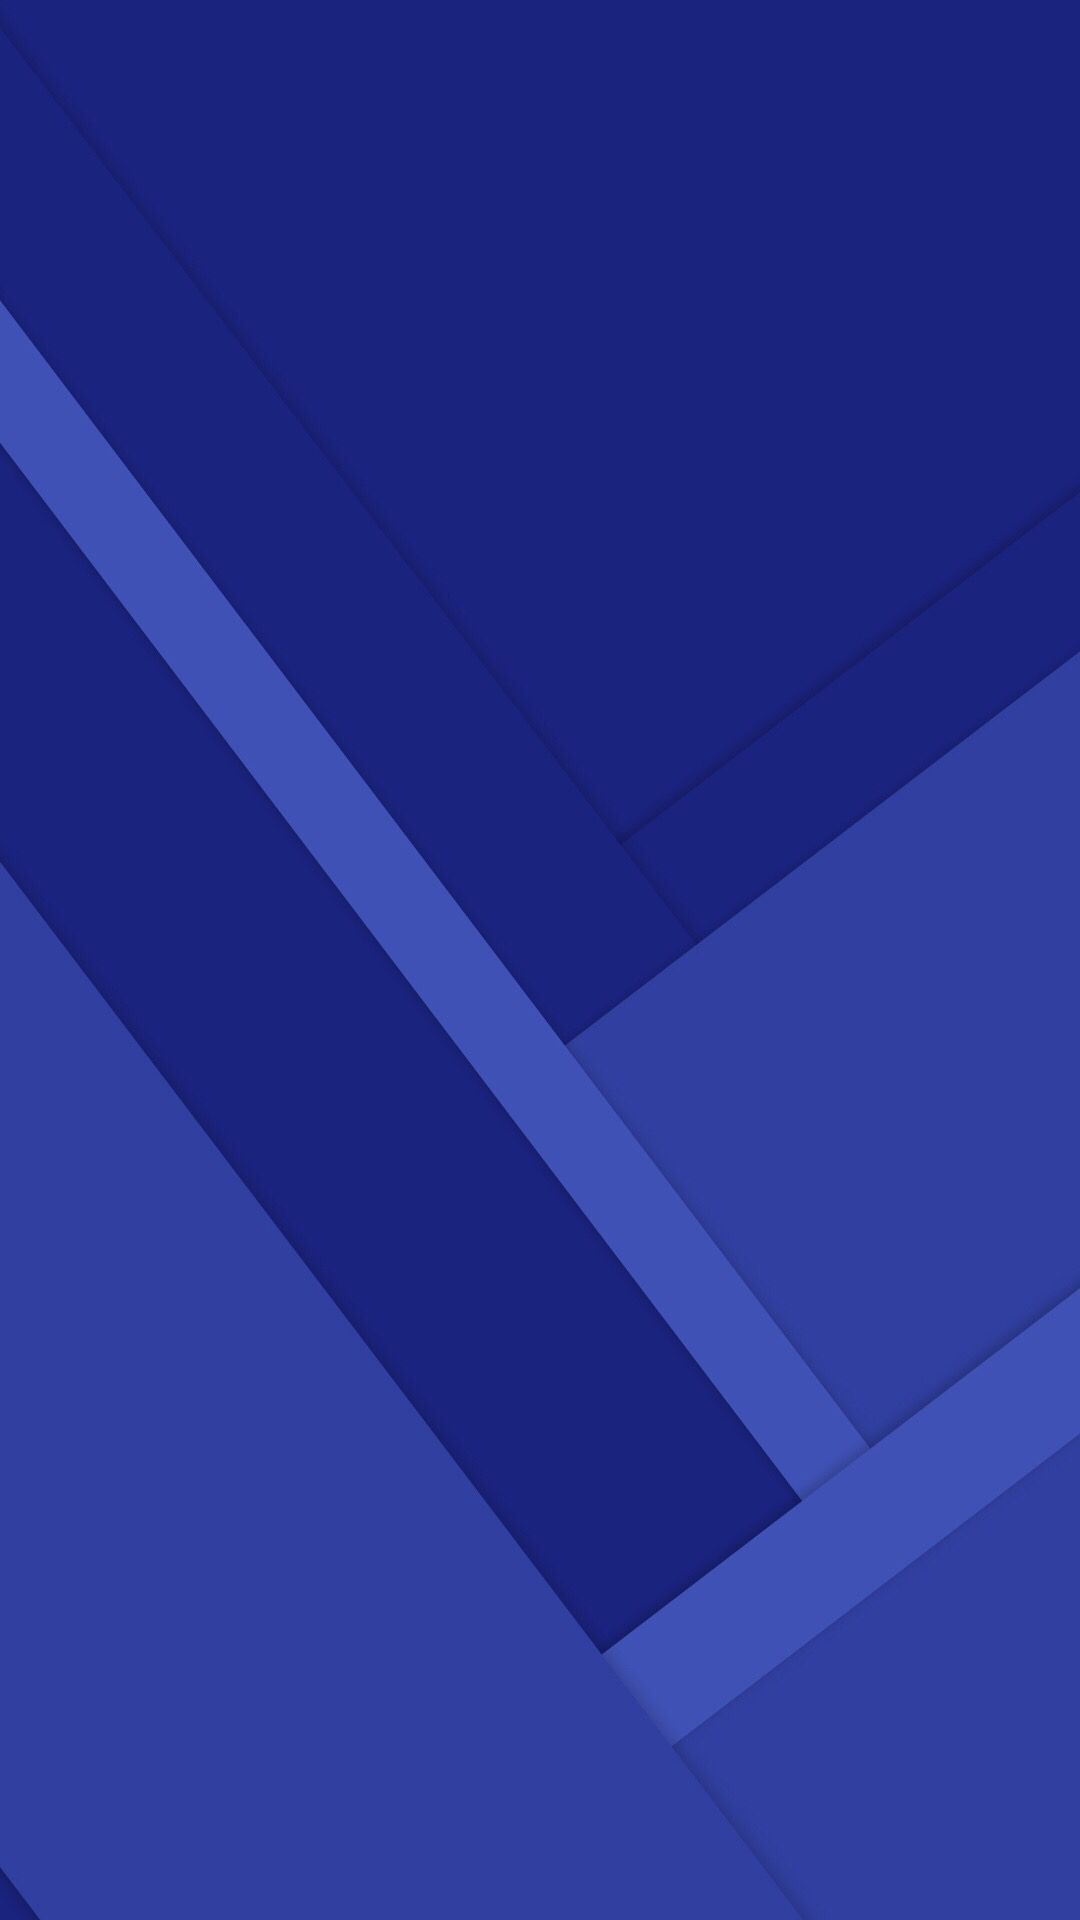 Blue Abstract Wallpaper Color Wallpaper Iphone Abstract Wallpaper Phone Wallpaper For Men